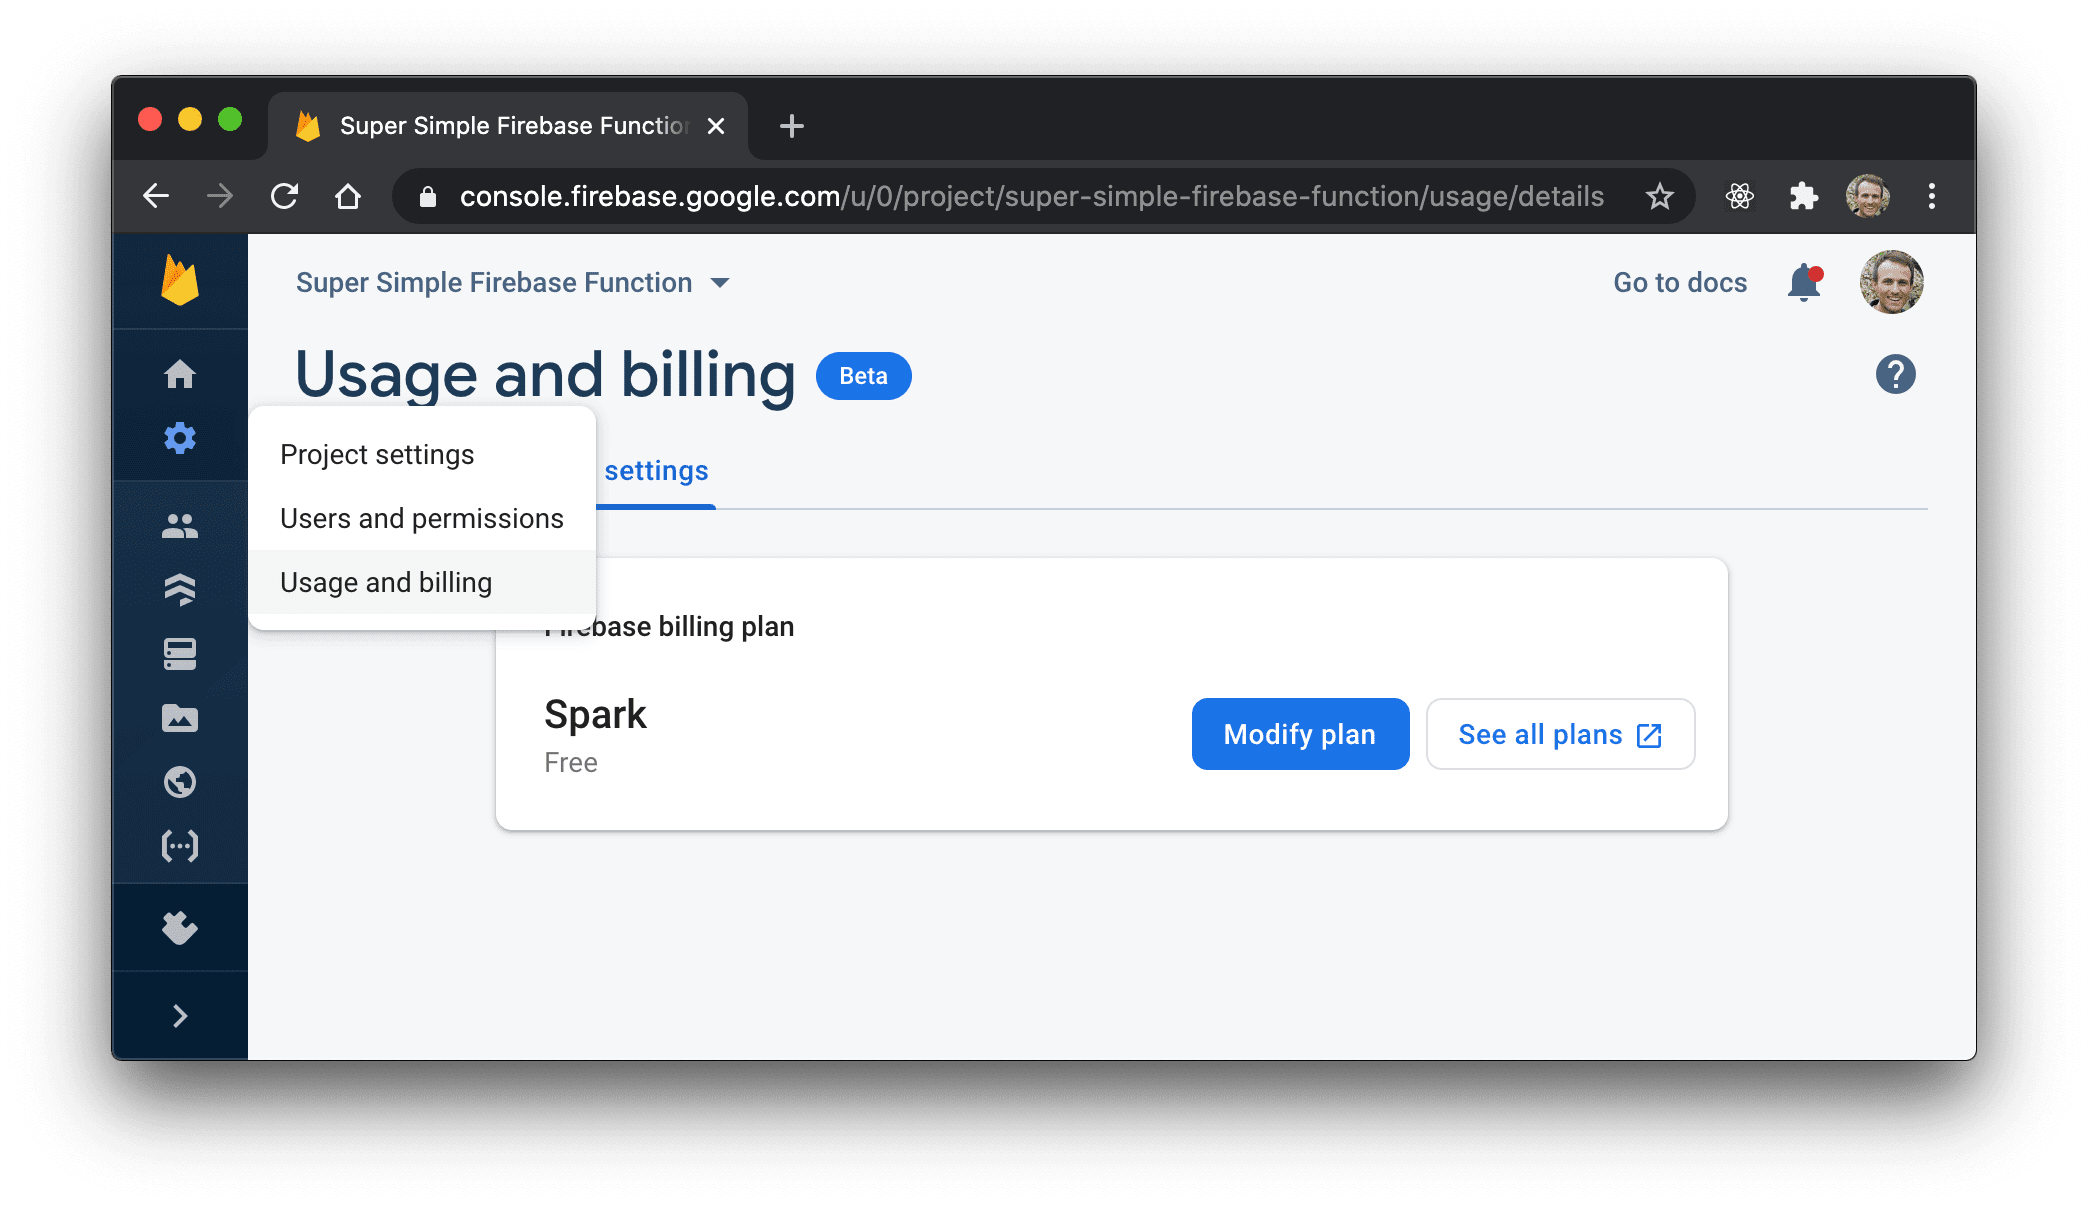 Usage and billing settings page